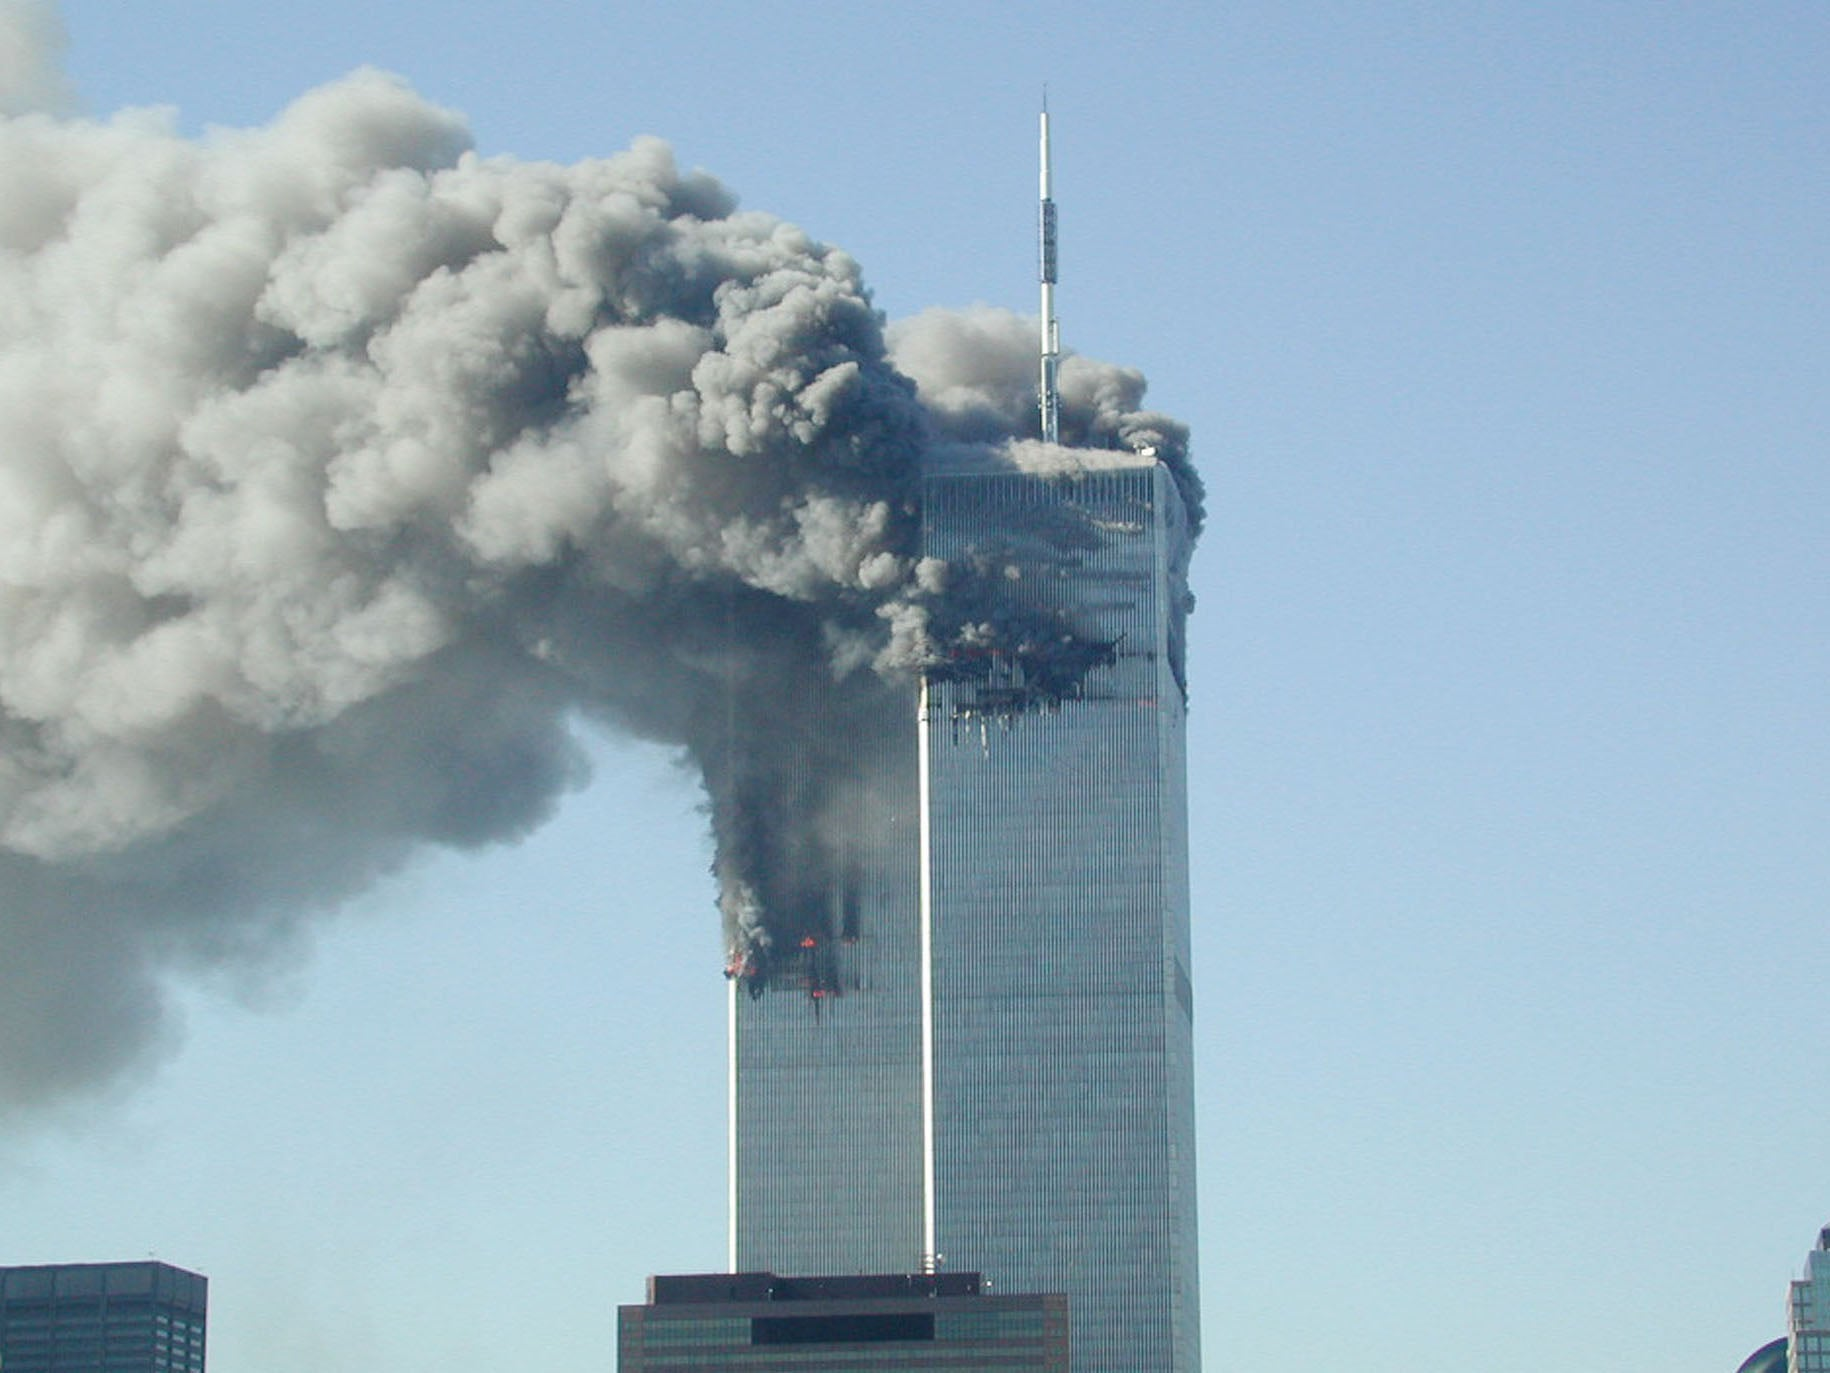 I knew Muslims who celebrated 9/11 – 15 years on, they know how naive they were